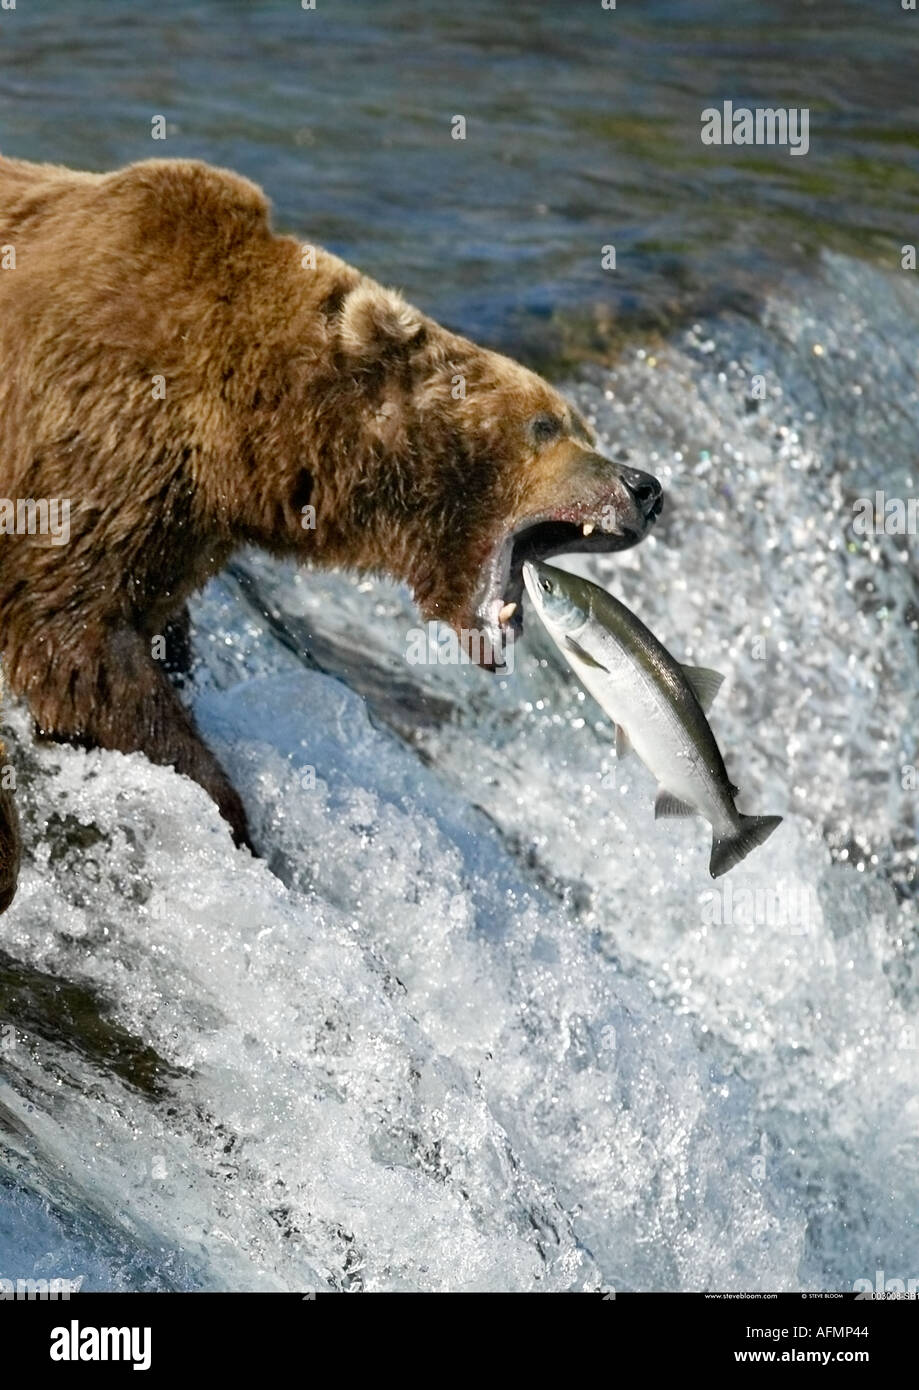 Orso bruno la cattura del salmone Brooks Falls Katmai National Park in Alaska Immagini Stock